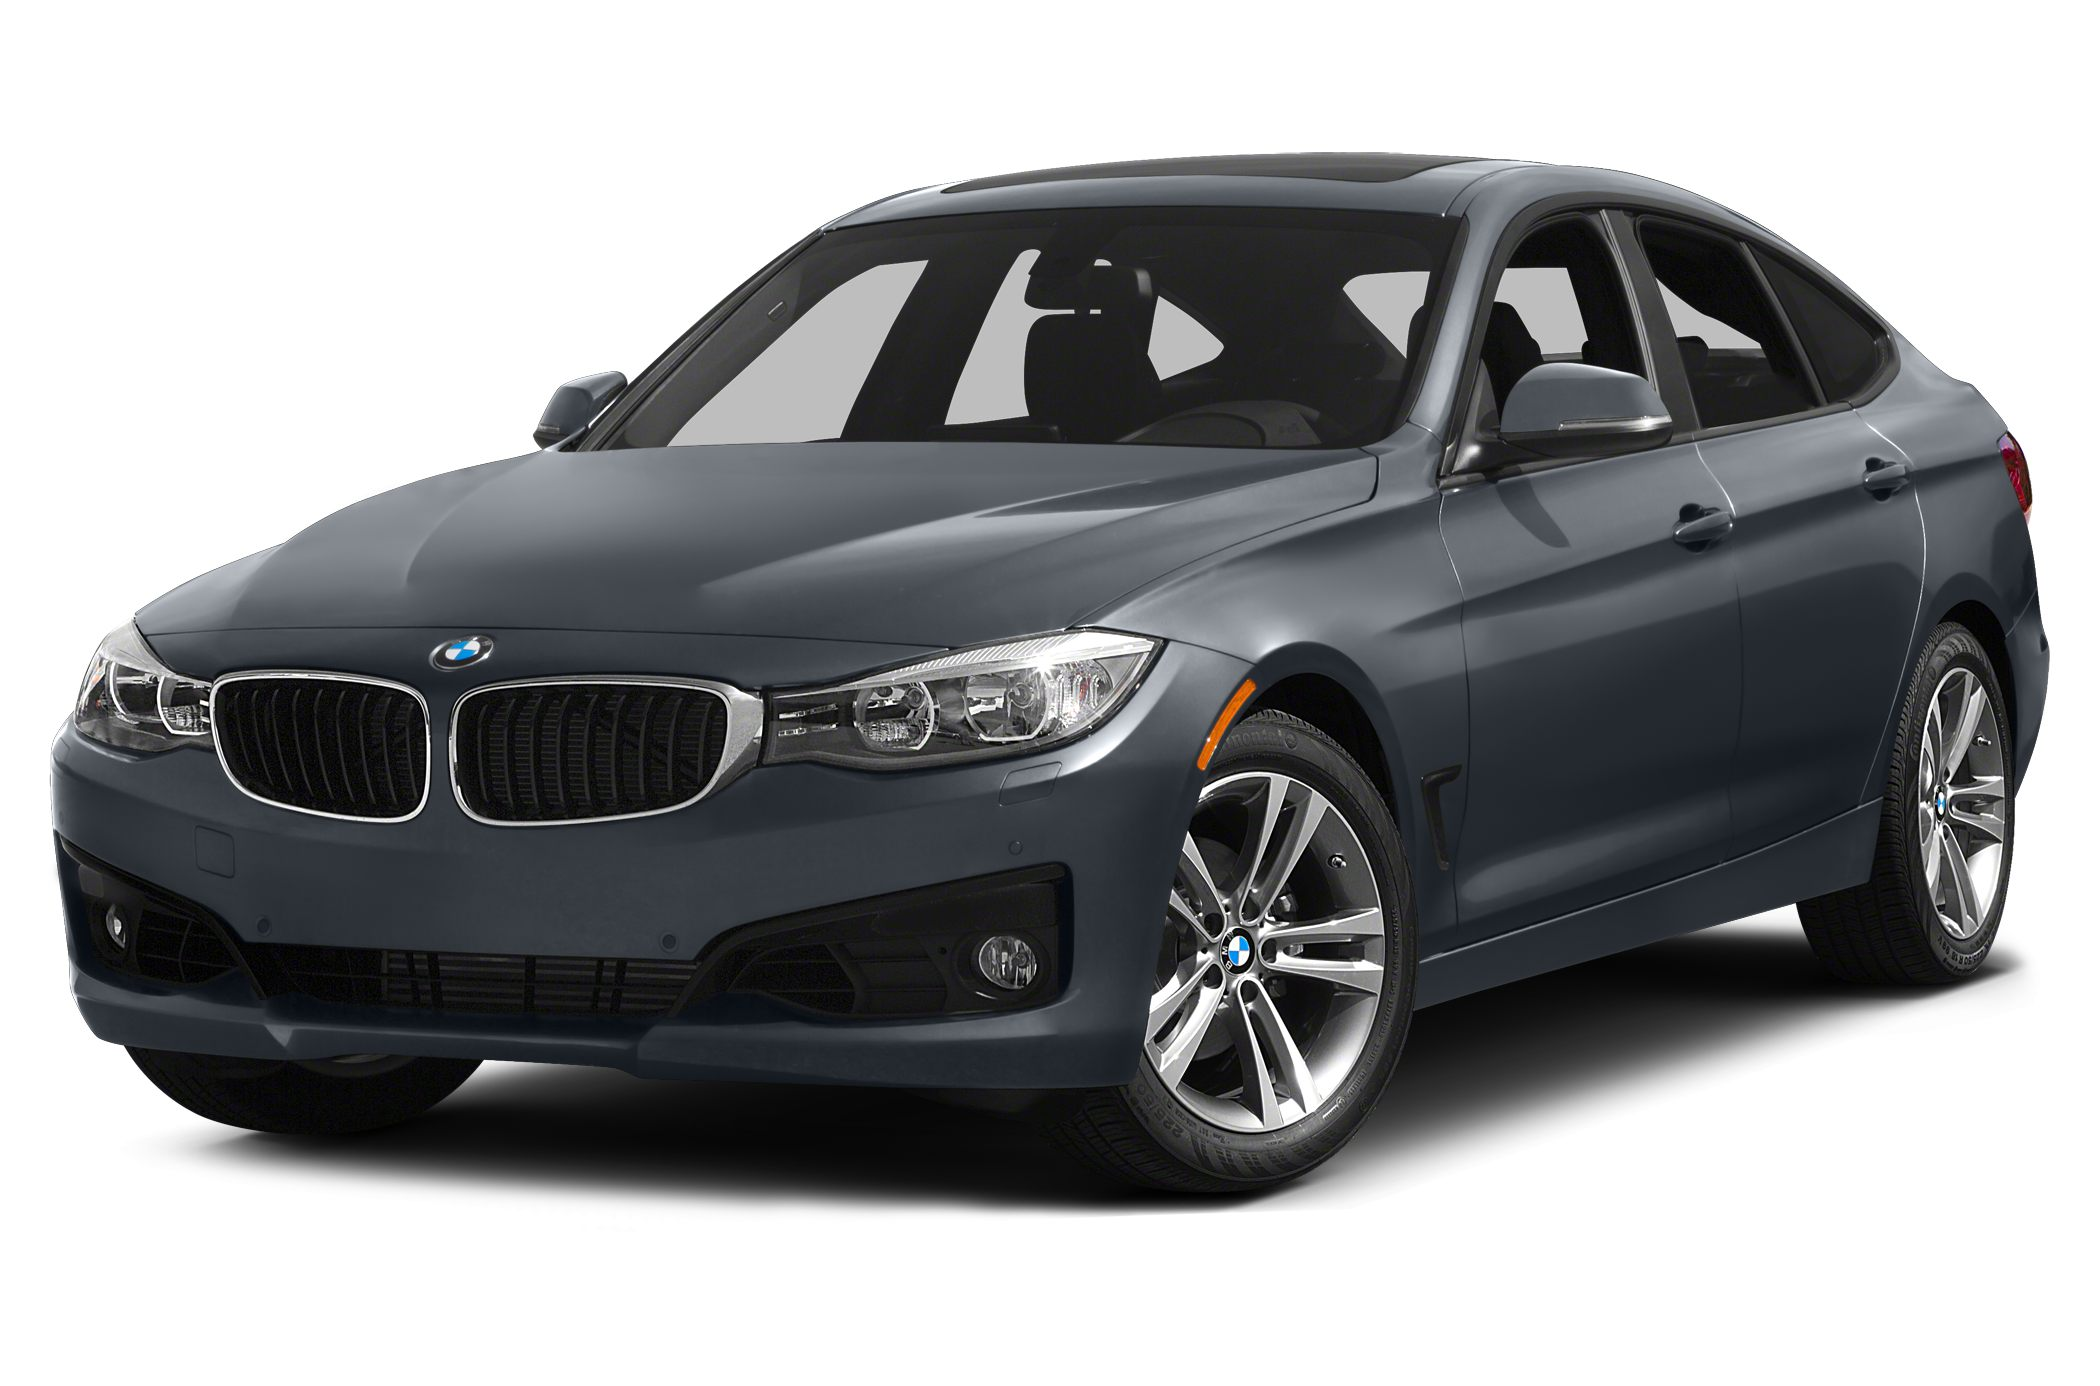 2015 BMW 328 Gran Turismo Safety Features